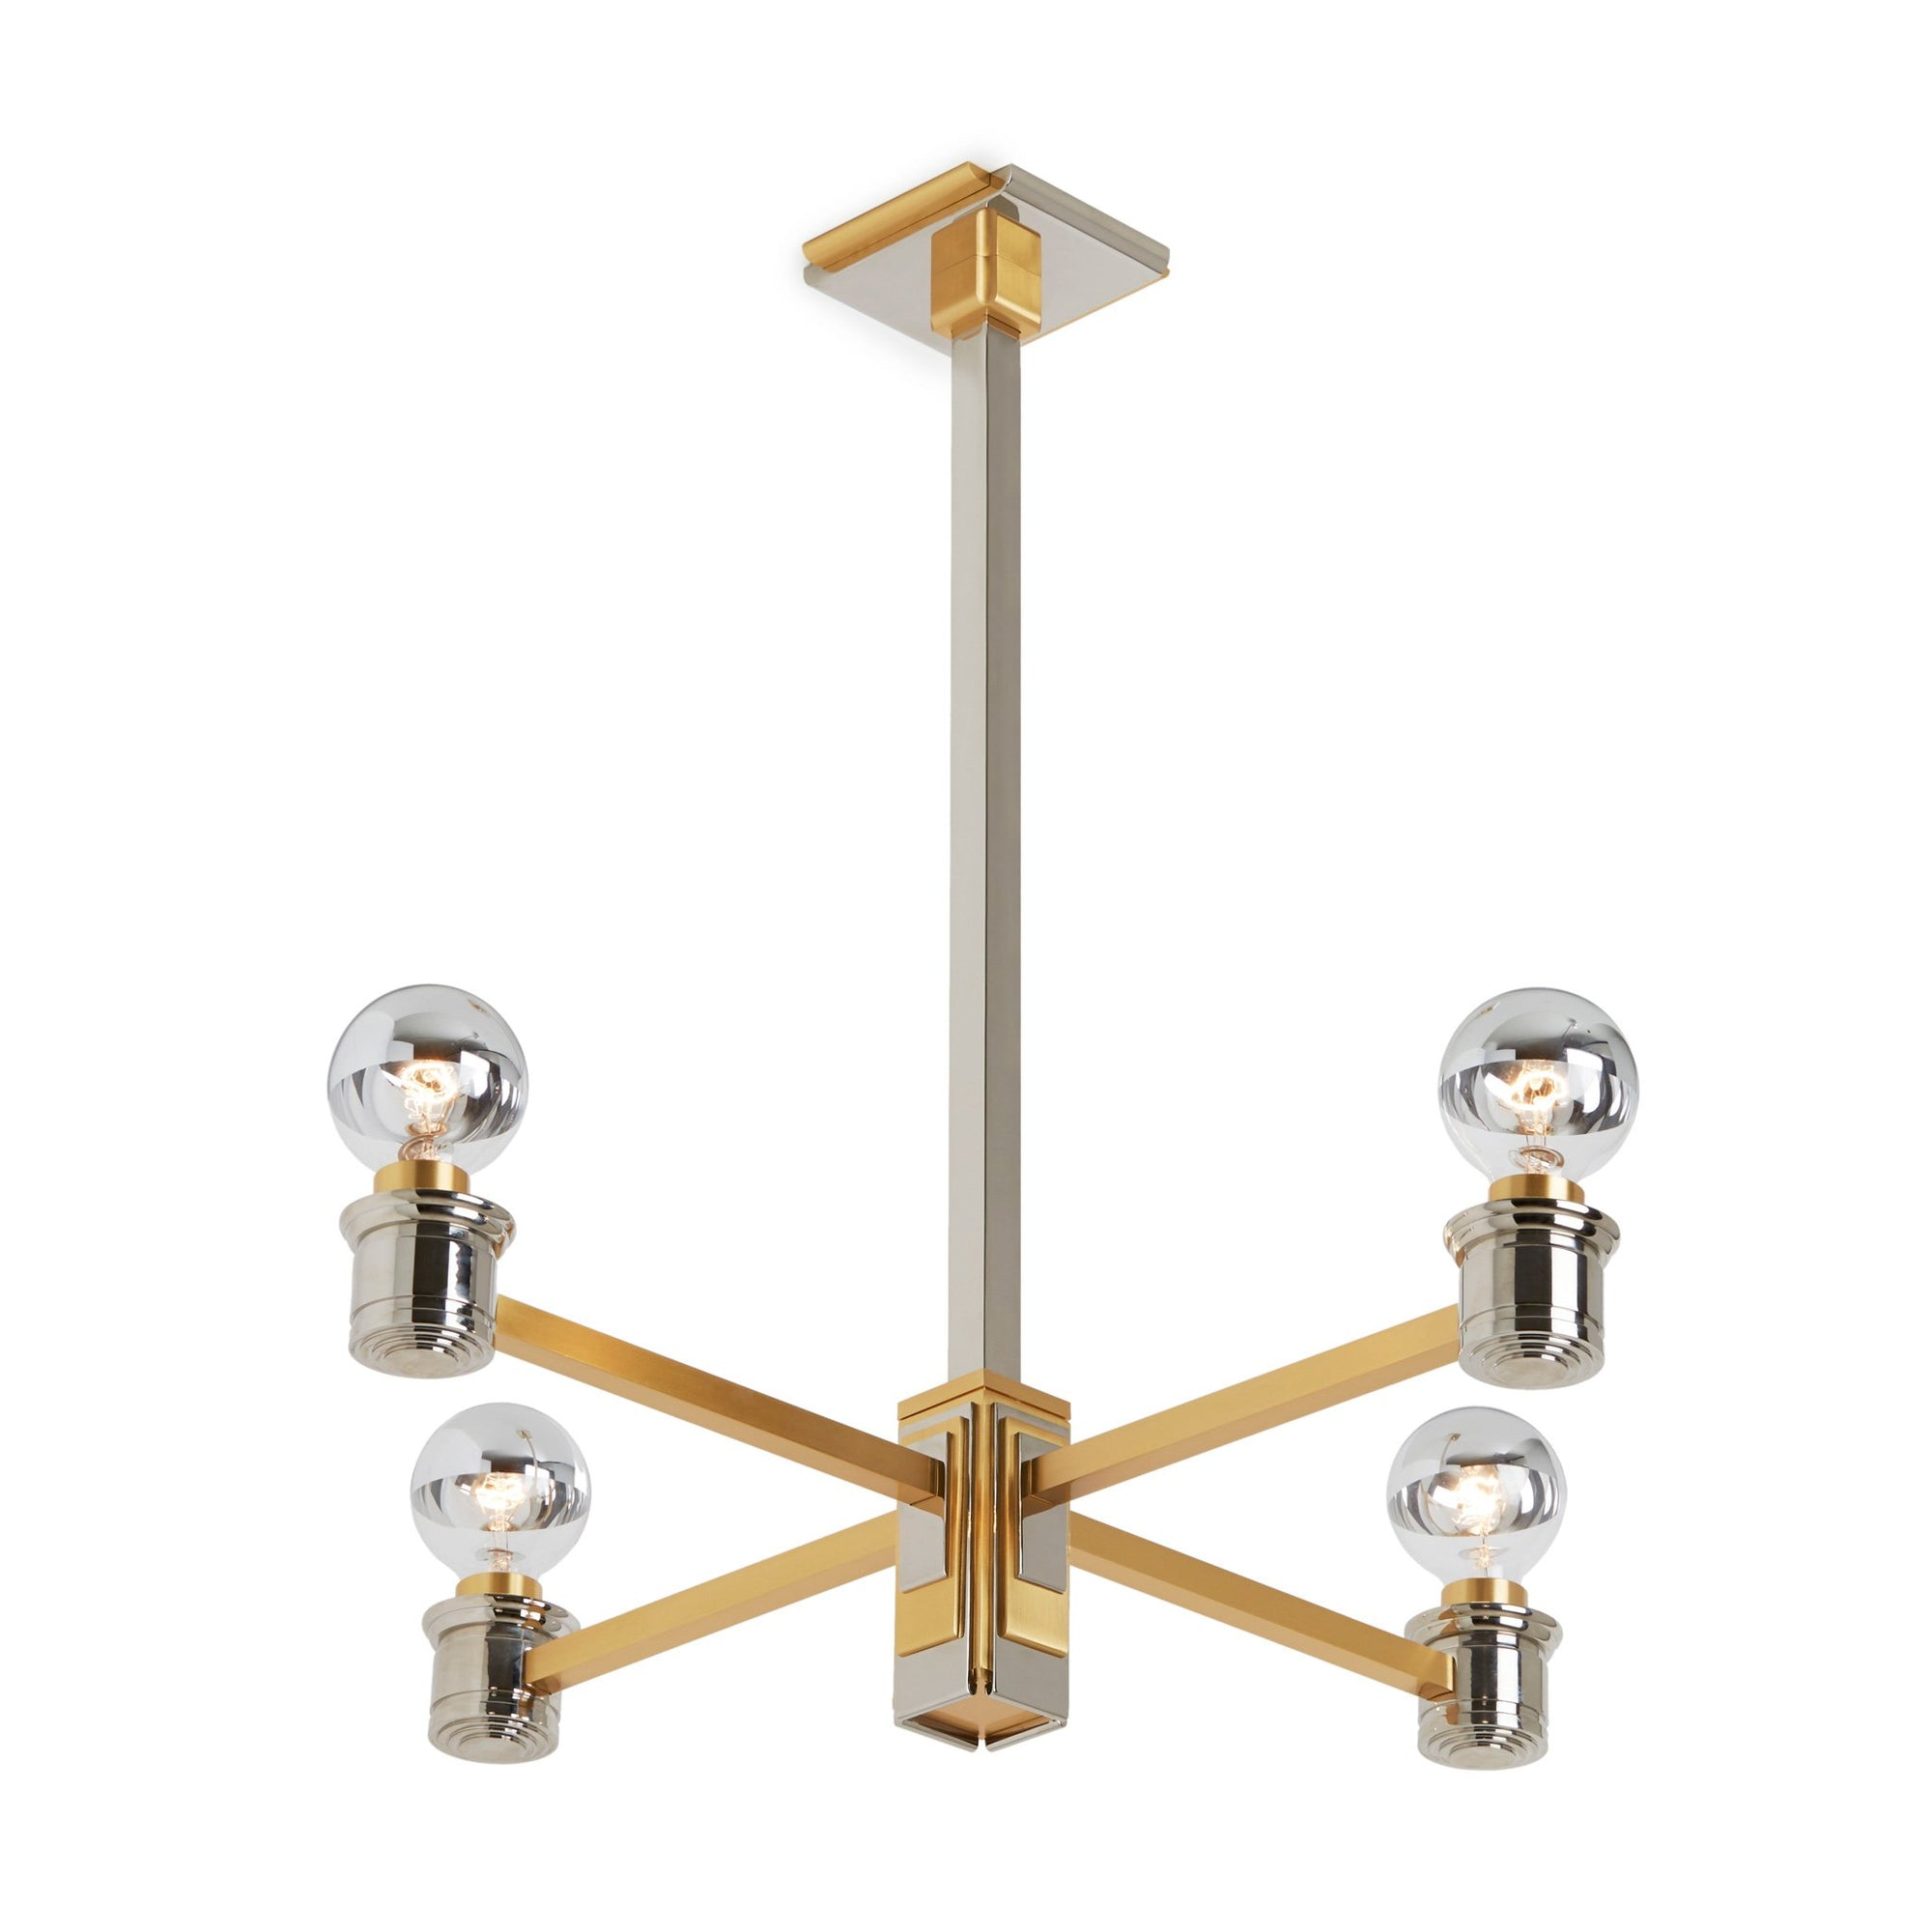 7210-CHND-PN_GP Sherle Wagner International Nouveau Chandelier in Polished Nickel and Gold plate metal finish